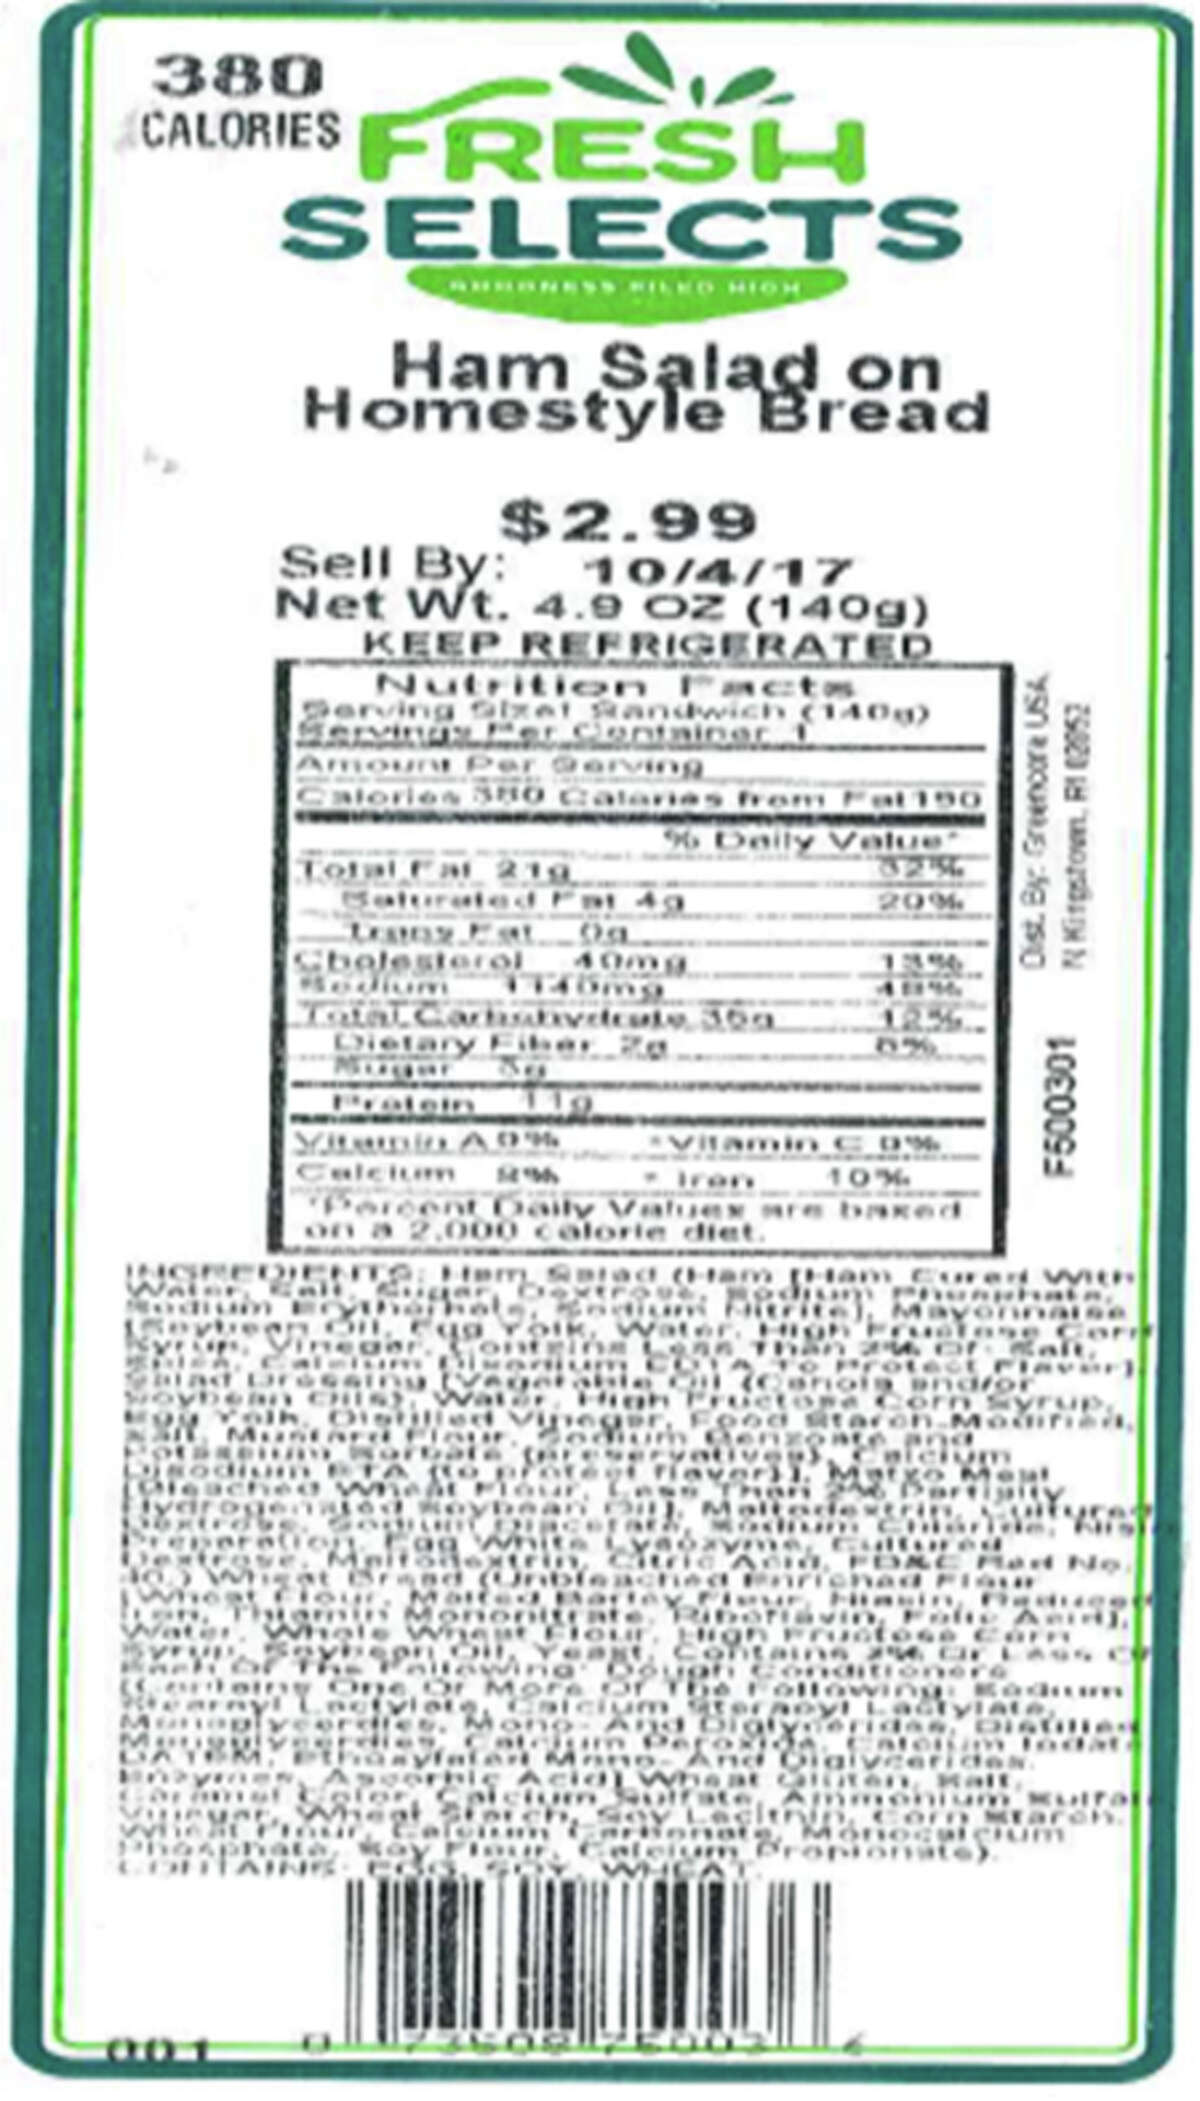 The FDA recalled ham salad sandwiches, egg salad sandwiches and seafood stuffing sold at three New York chains after samples tested positive for Listeria on Sept. 29, 2017.